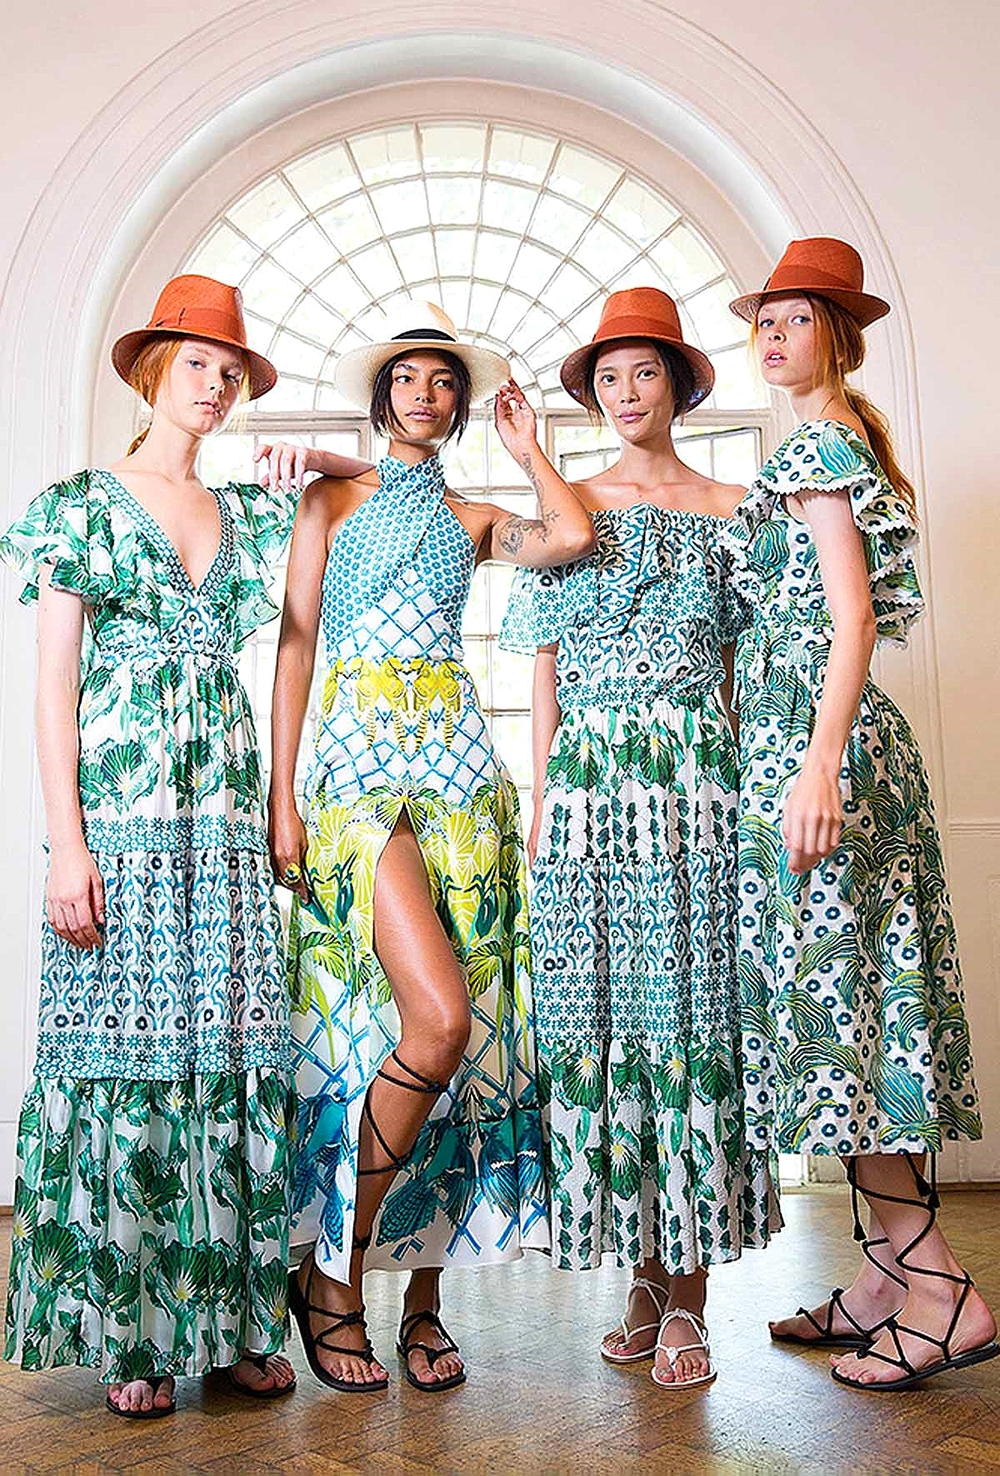 057efb50c0d The designer sent out a lineup of dresses covered in embroidery and other  needlework done in a summer garden color palette inspired by the images of  Robert ...